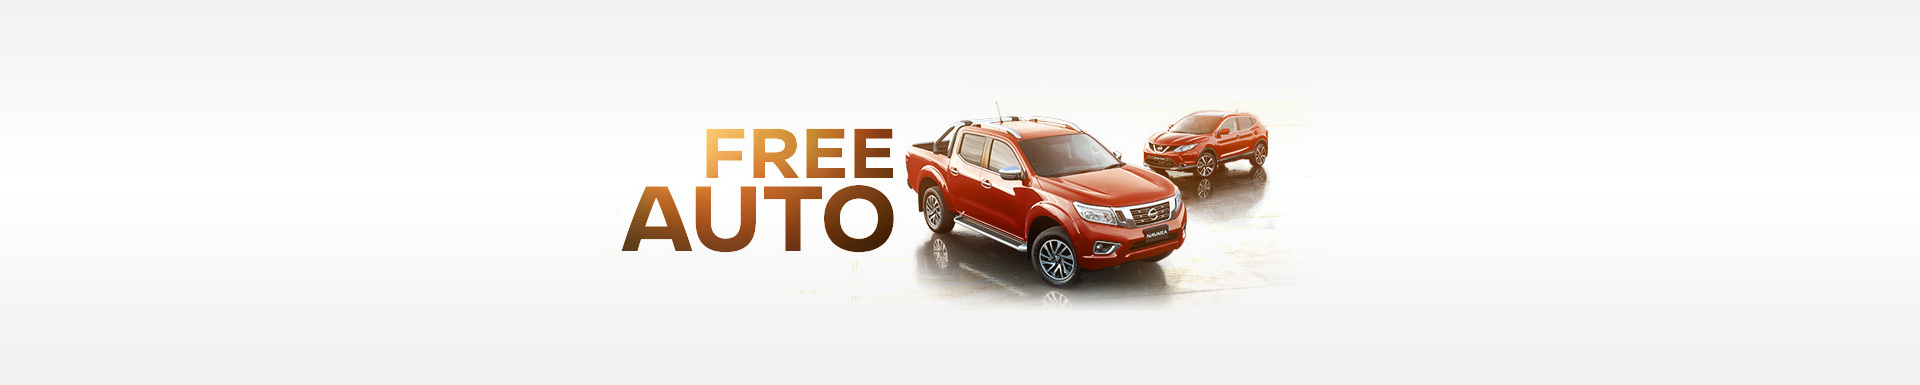 Nissan - National Offer - Free Auto